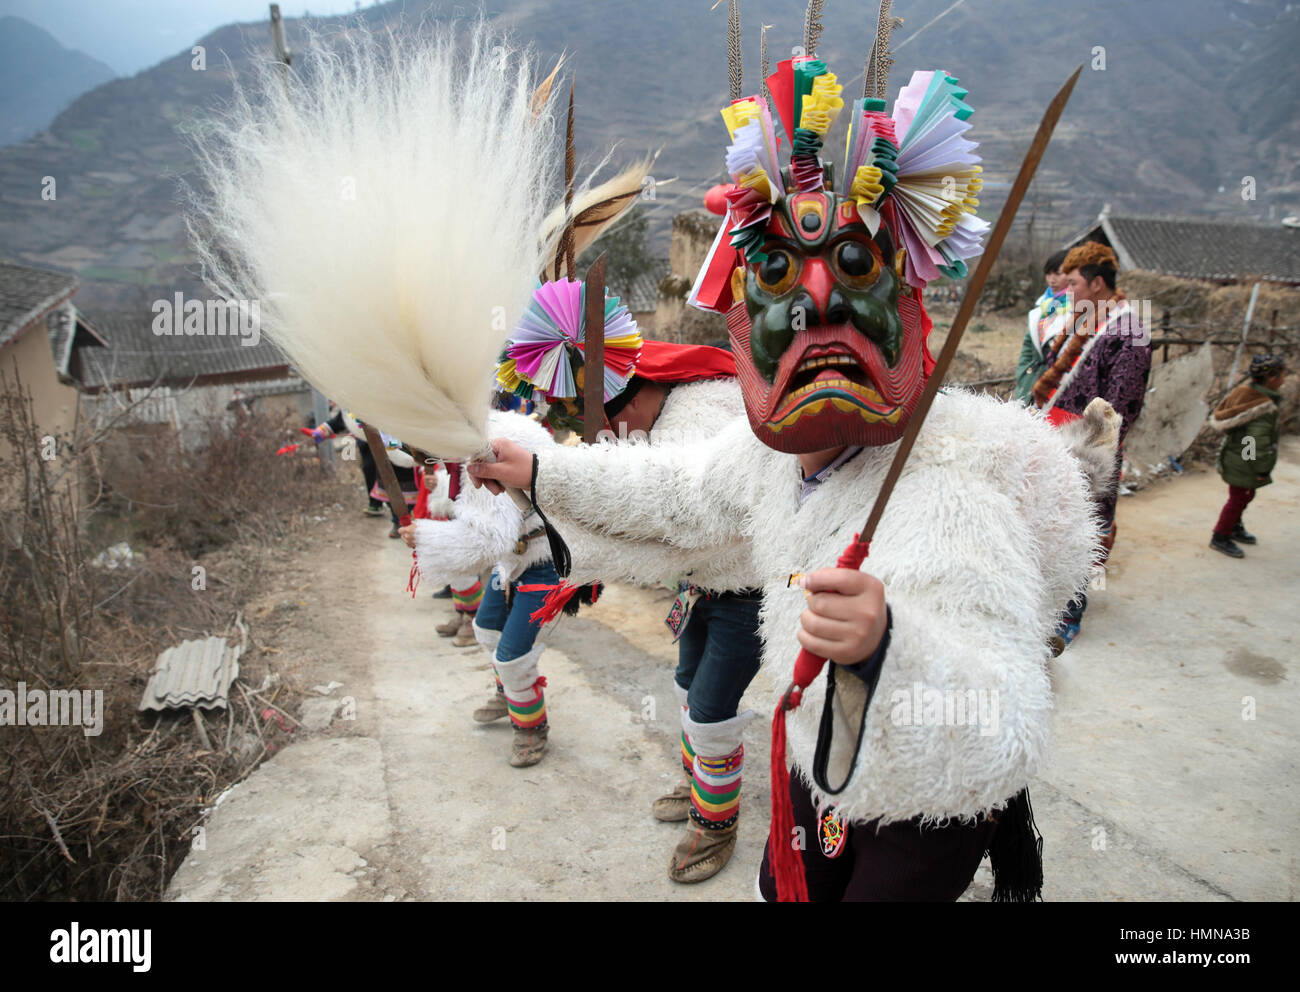 (170210) -- LONGNAN, Feb. 10, 2017 (Xinhua) -- Villagers perform Chigezhou, or 'Dance for the Gods of Mountains', - Stock Image